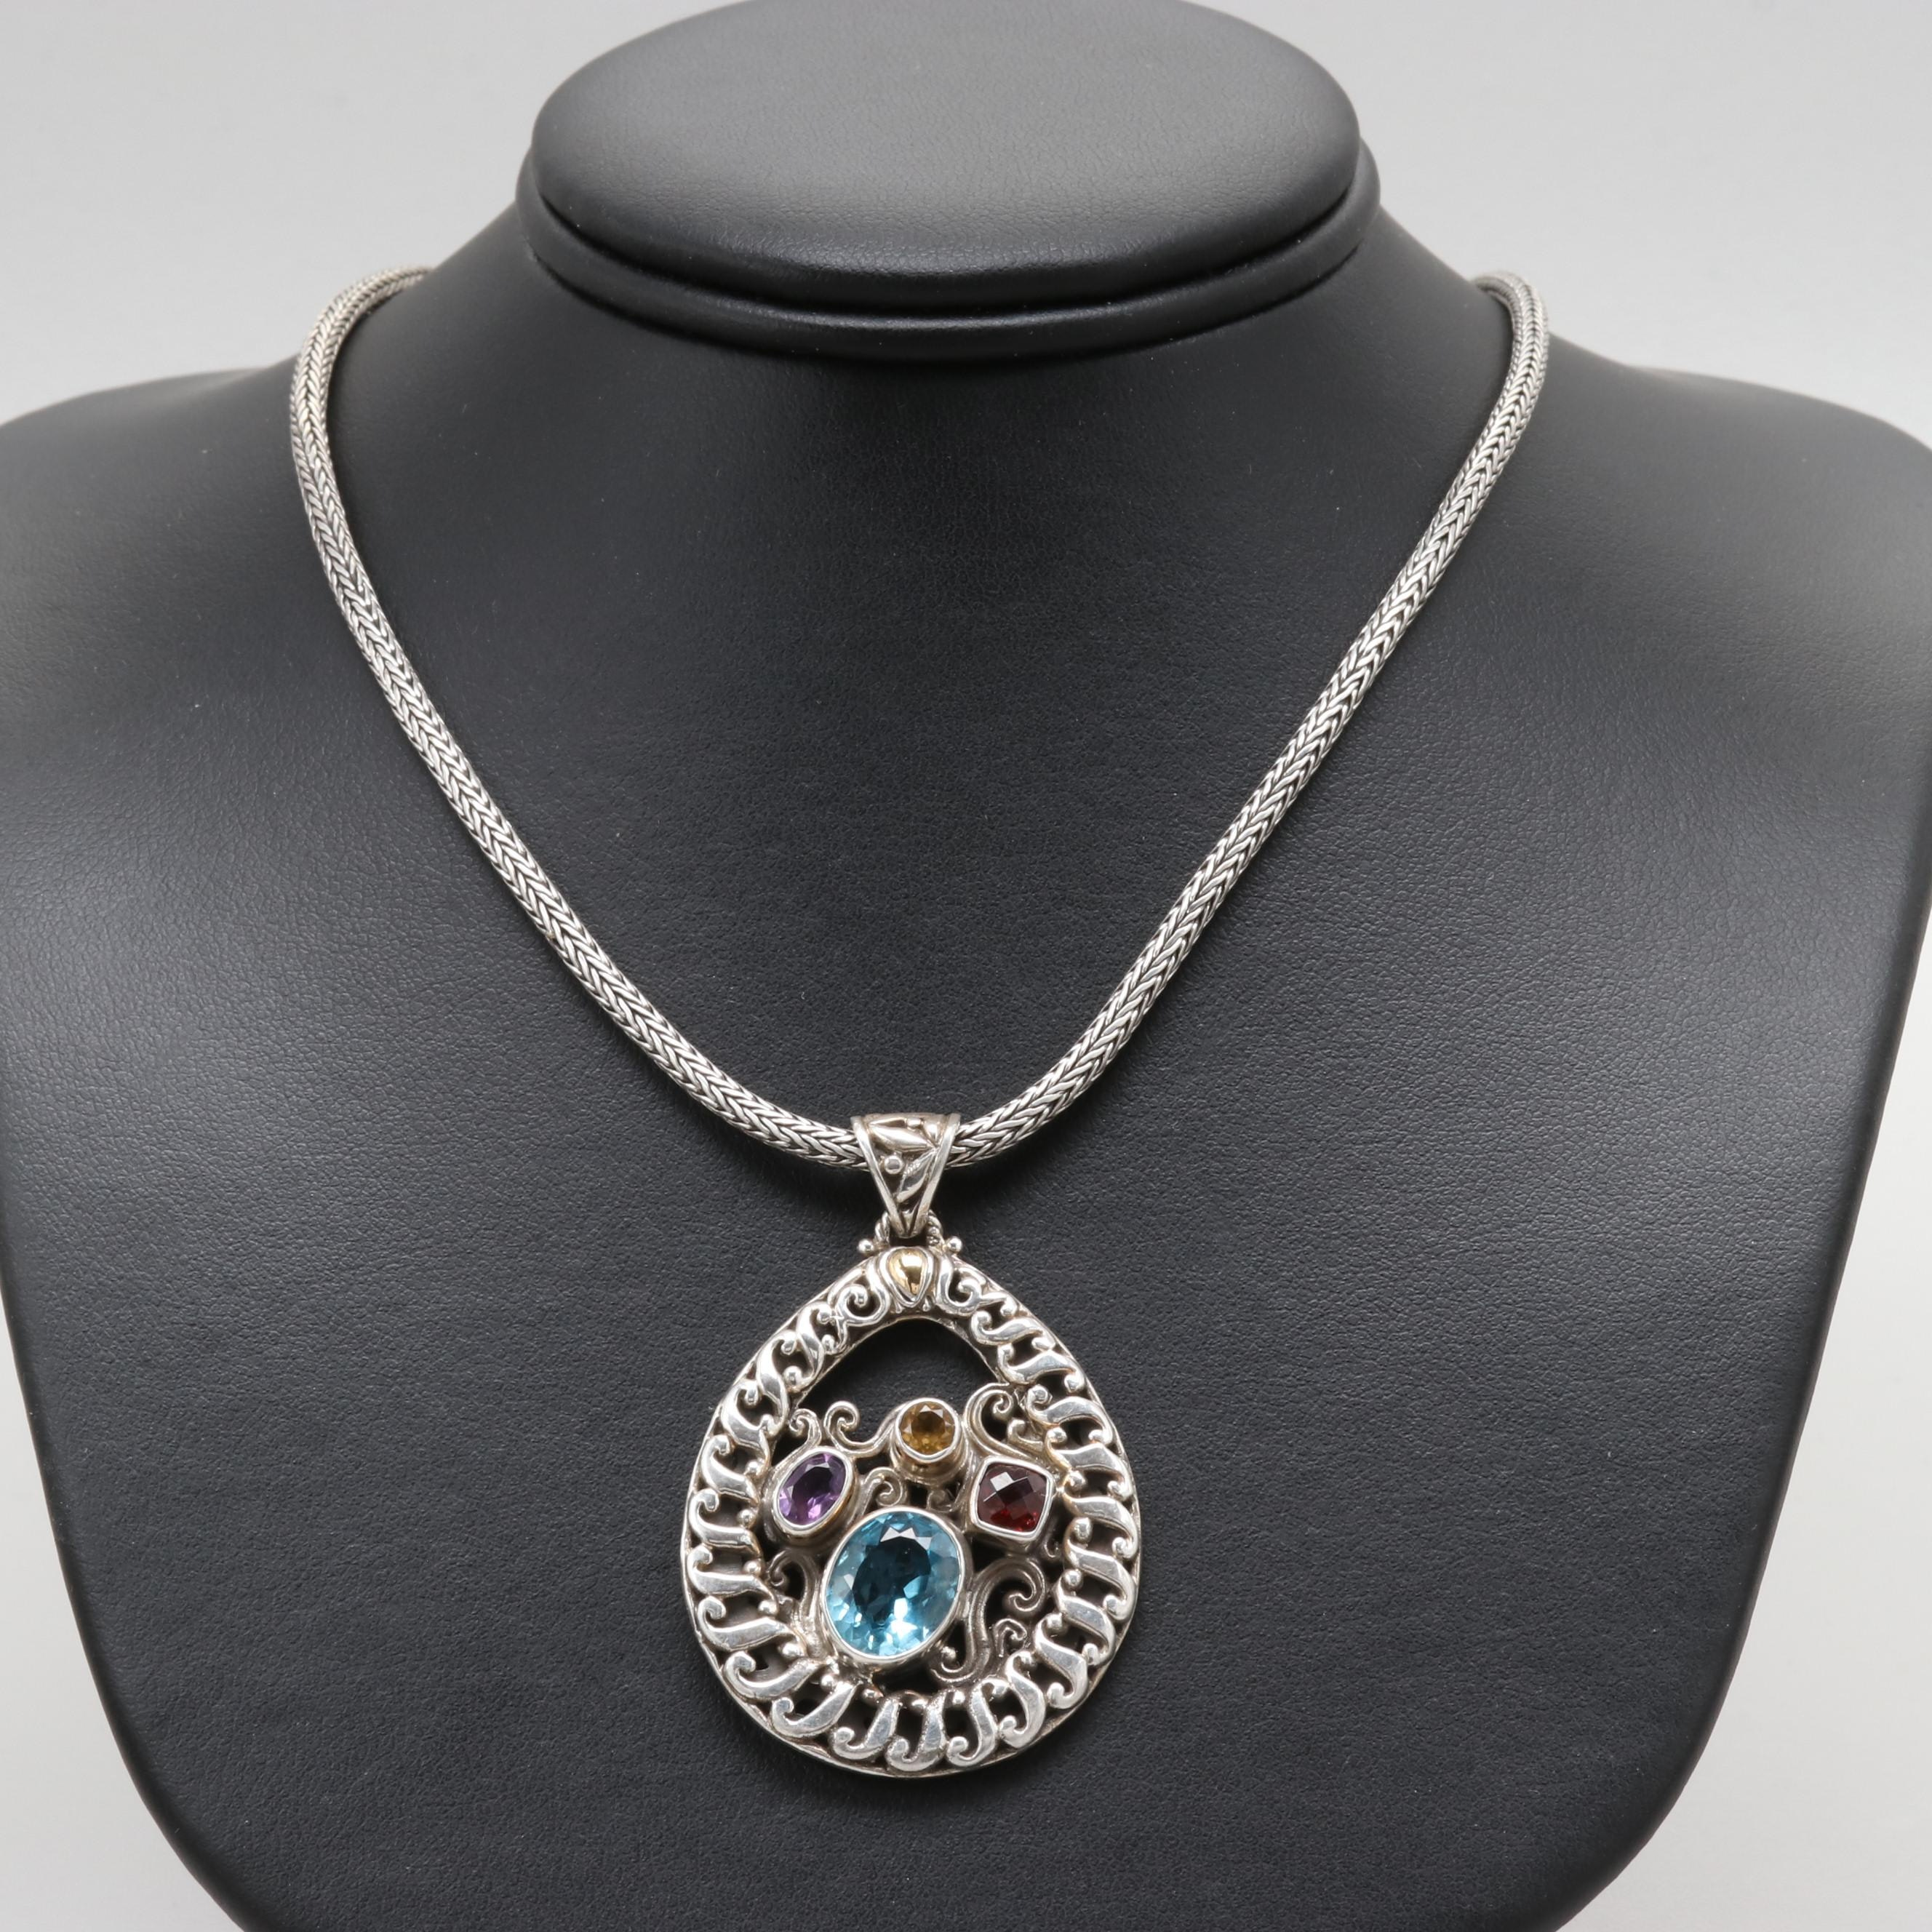 Robert Manse Sterling Silver Blue Topaz and Gemstone Pendant Necklace